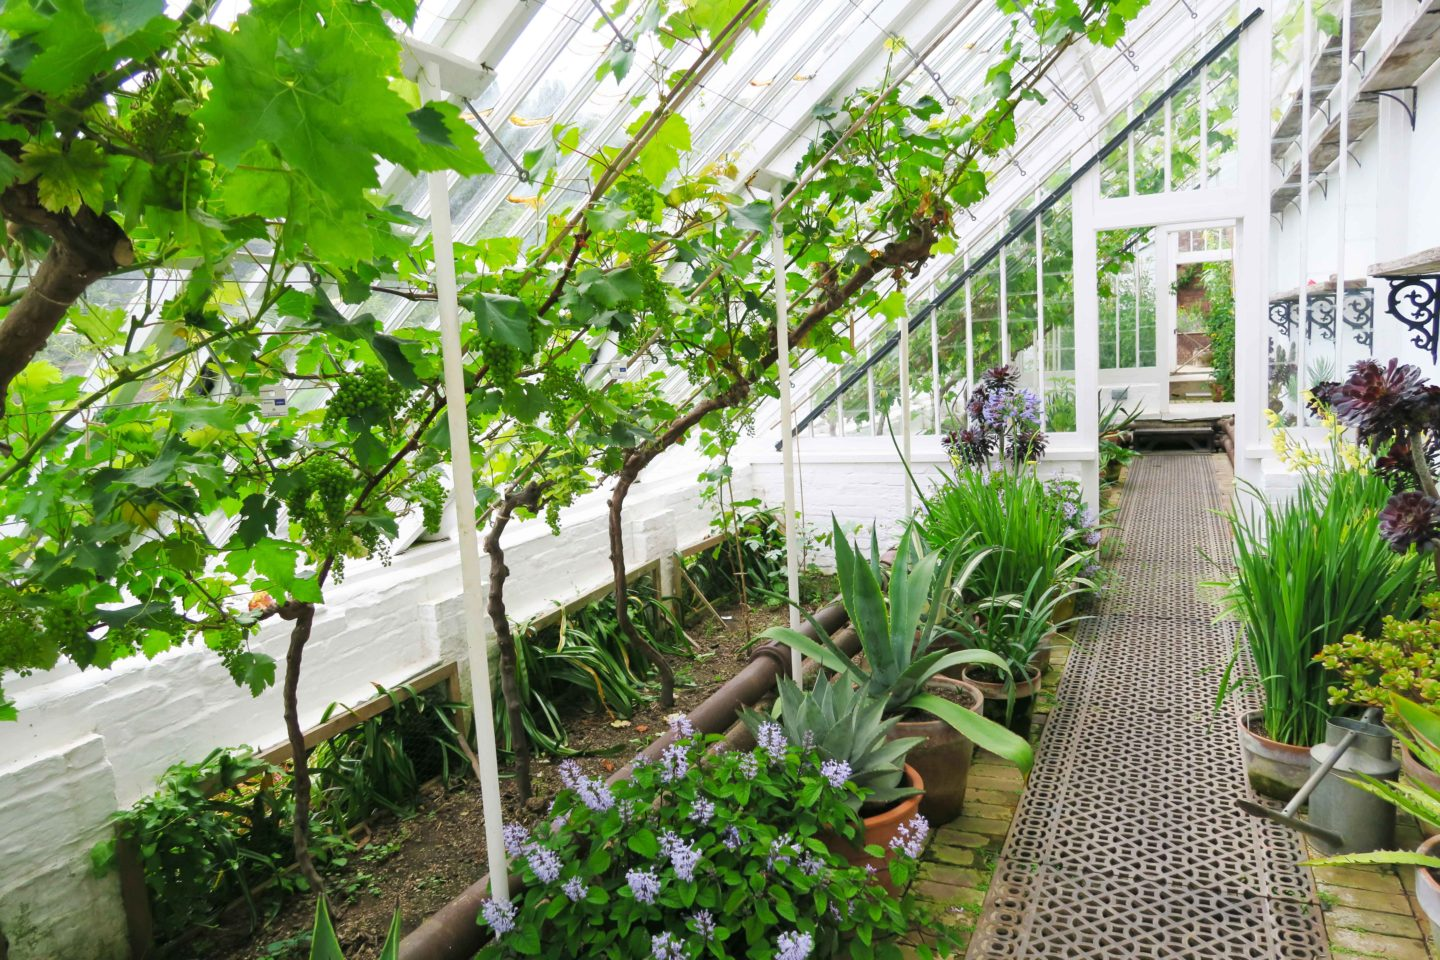 white greenhouse with vines and plants in the lost gardens of heligan in cornwall